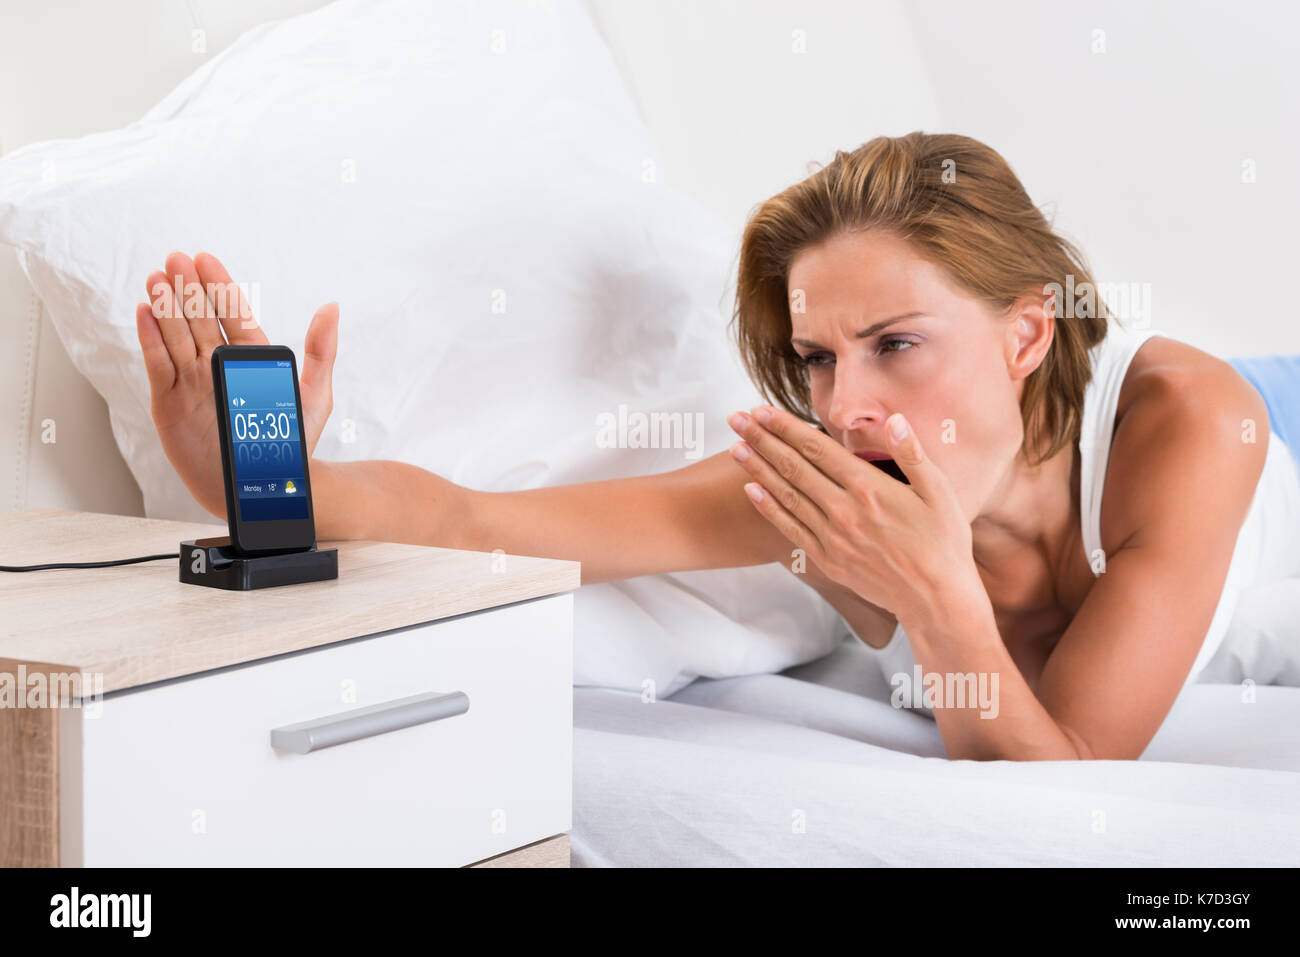 Young Woman Yawning While Snoozing Alarm On Mobile Phone - Stock Image